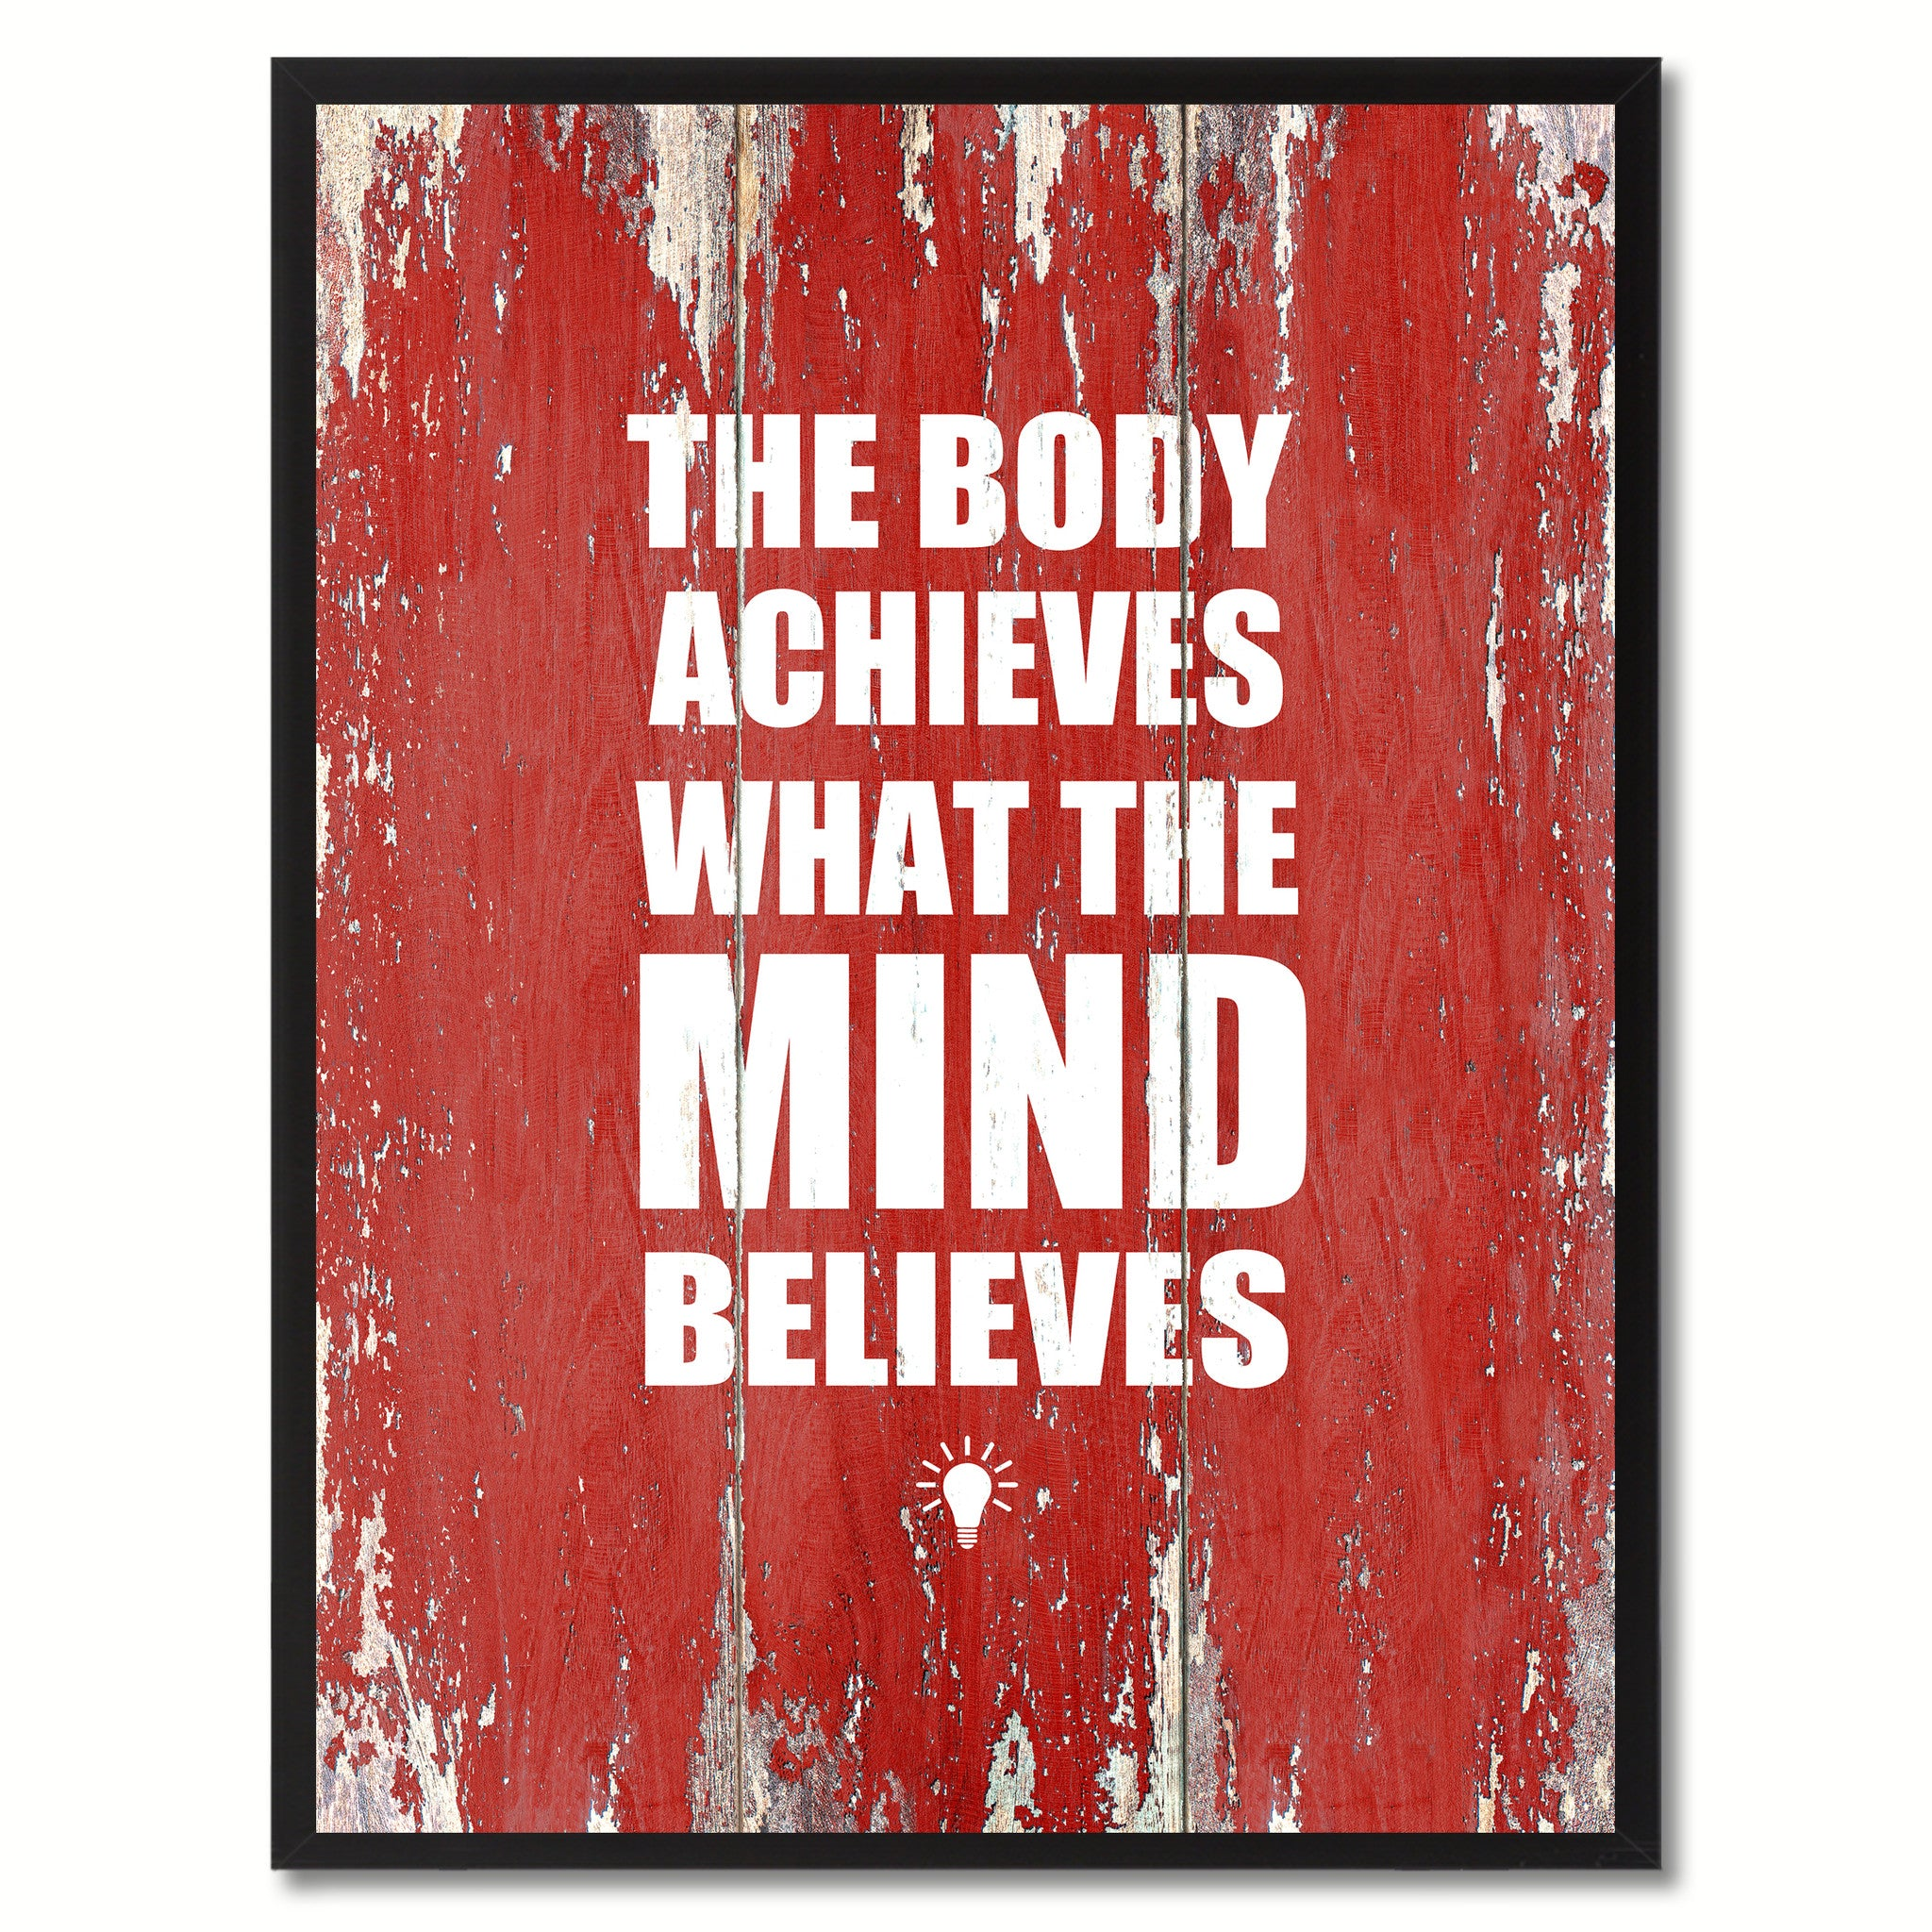 The Body Achieves What The Mind Believes Saying Canvas Print, Black Picture Frame Home Decor Wall Art Gifts